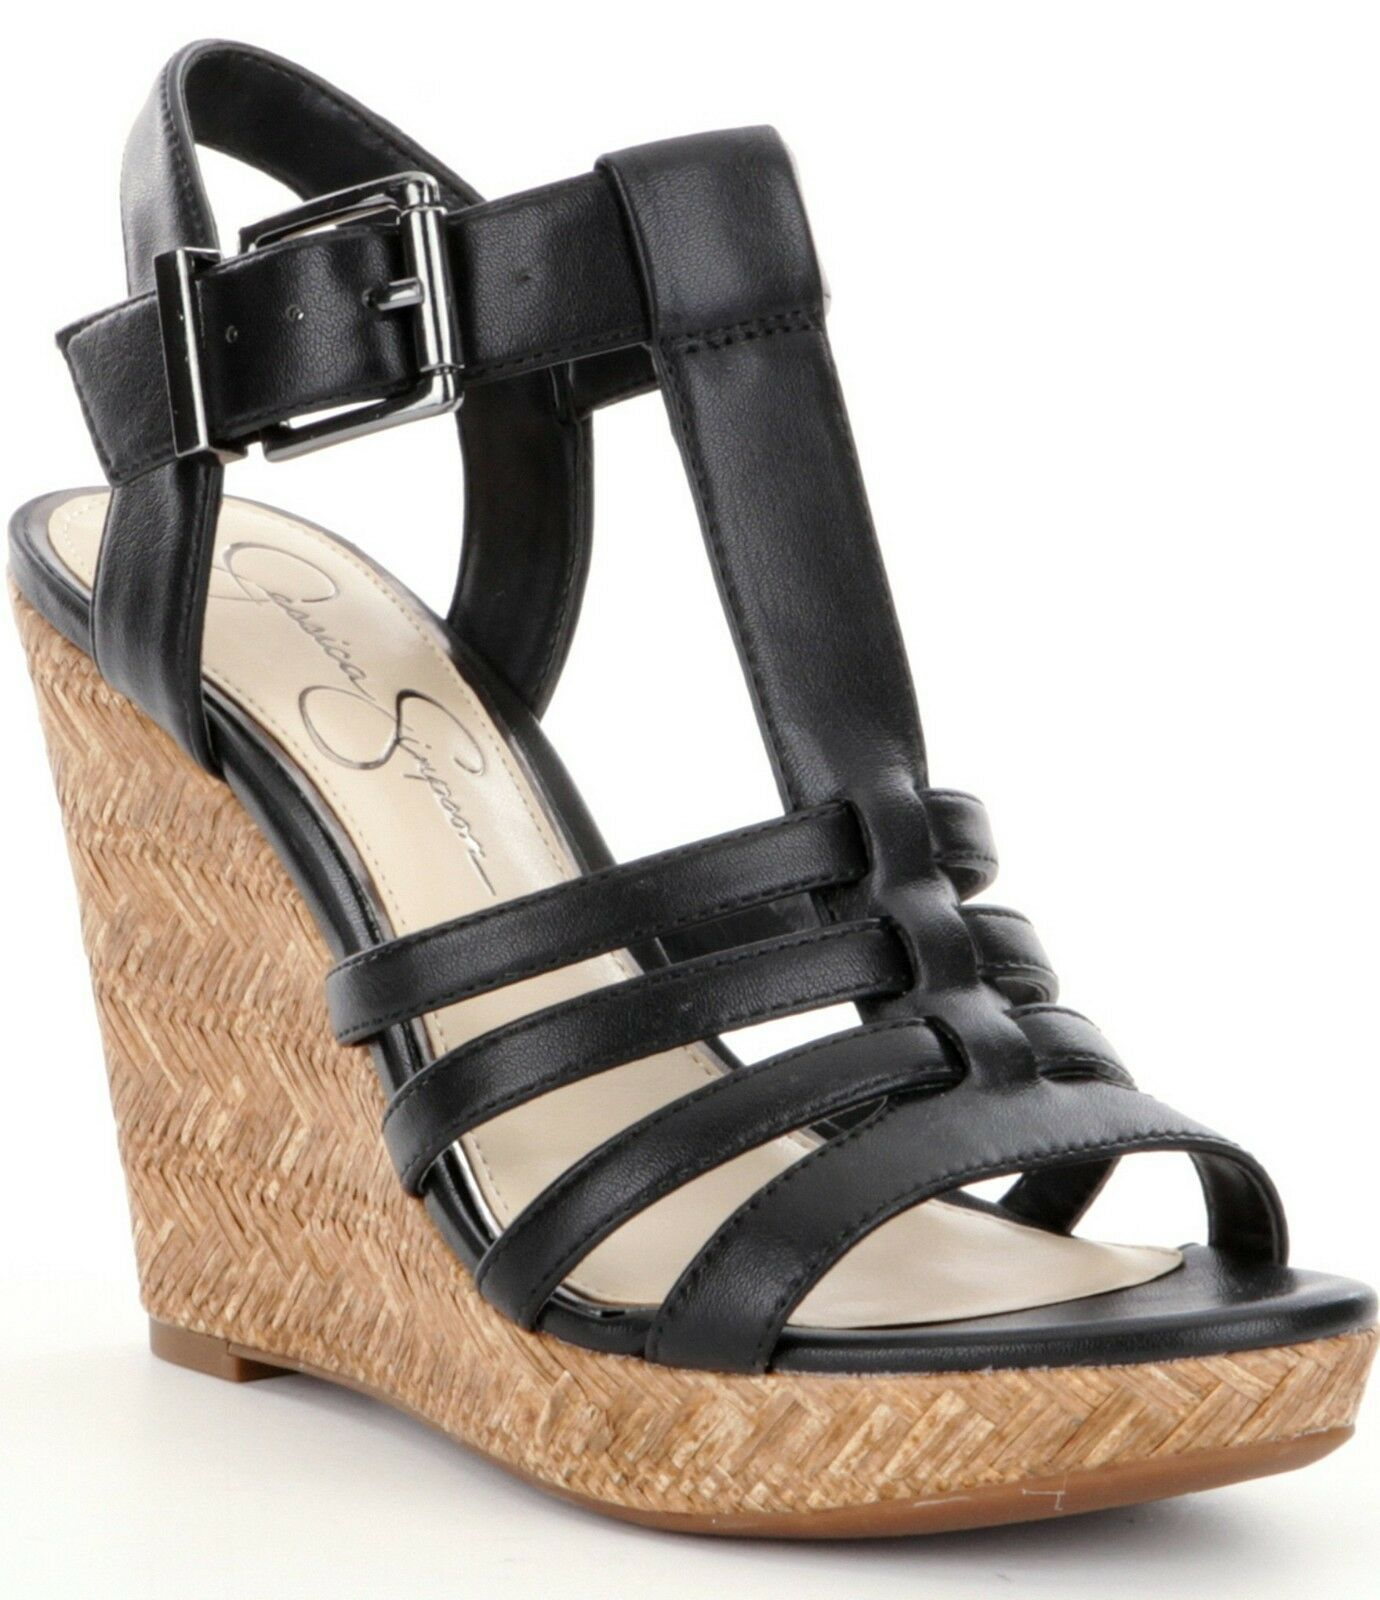 Jessica Simpson Jenaa Platform Wedge Sandals, Sizes 6-10 Black Sleek JS-JENNA